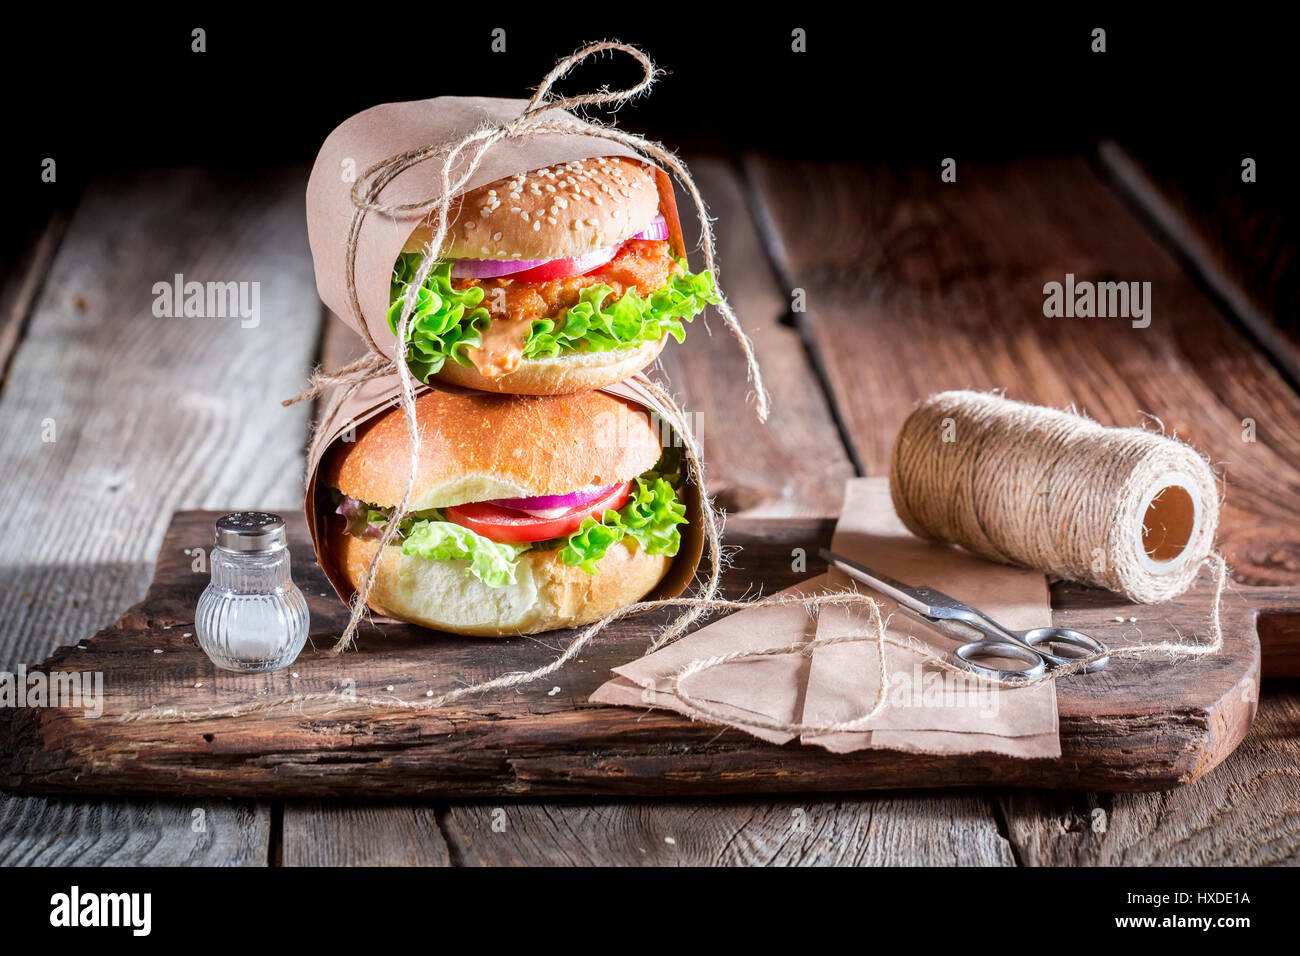 Homemade takeaway burger wrapped in paper Stock Photo: 136750022 - Alamy